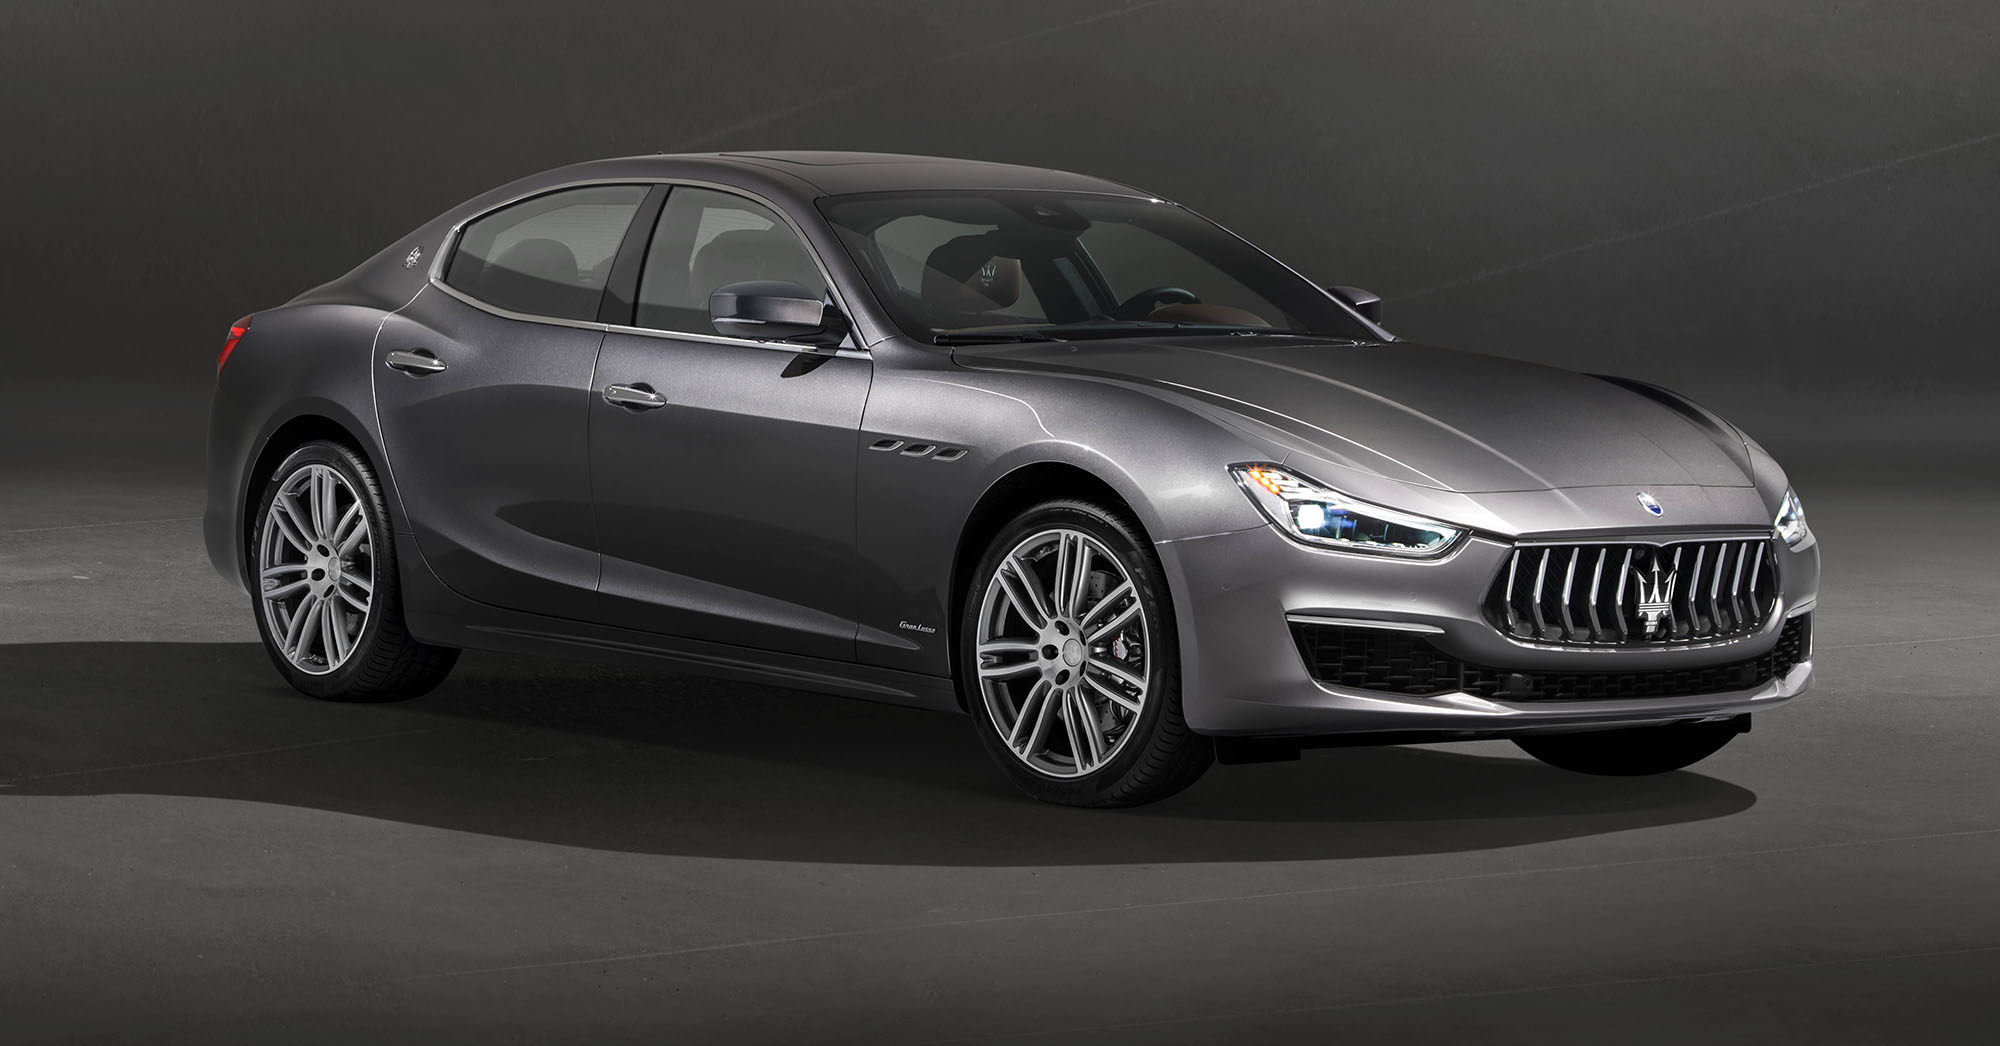 2018 Maserati Ghibli GranLusso, GranSport: Refreshed Sedan